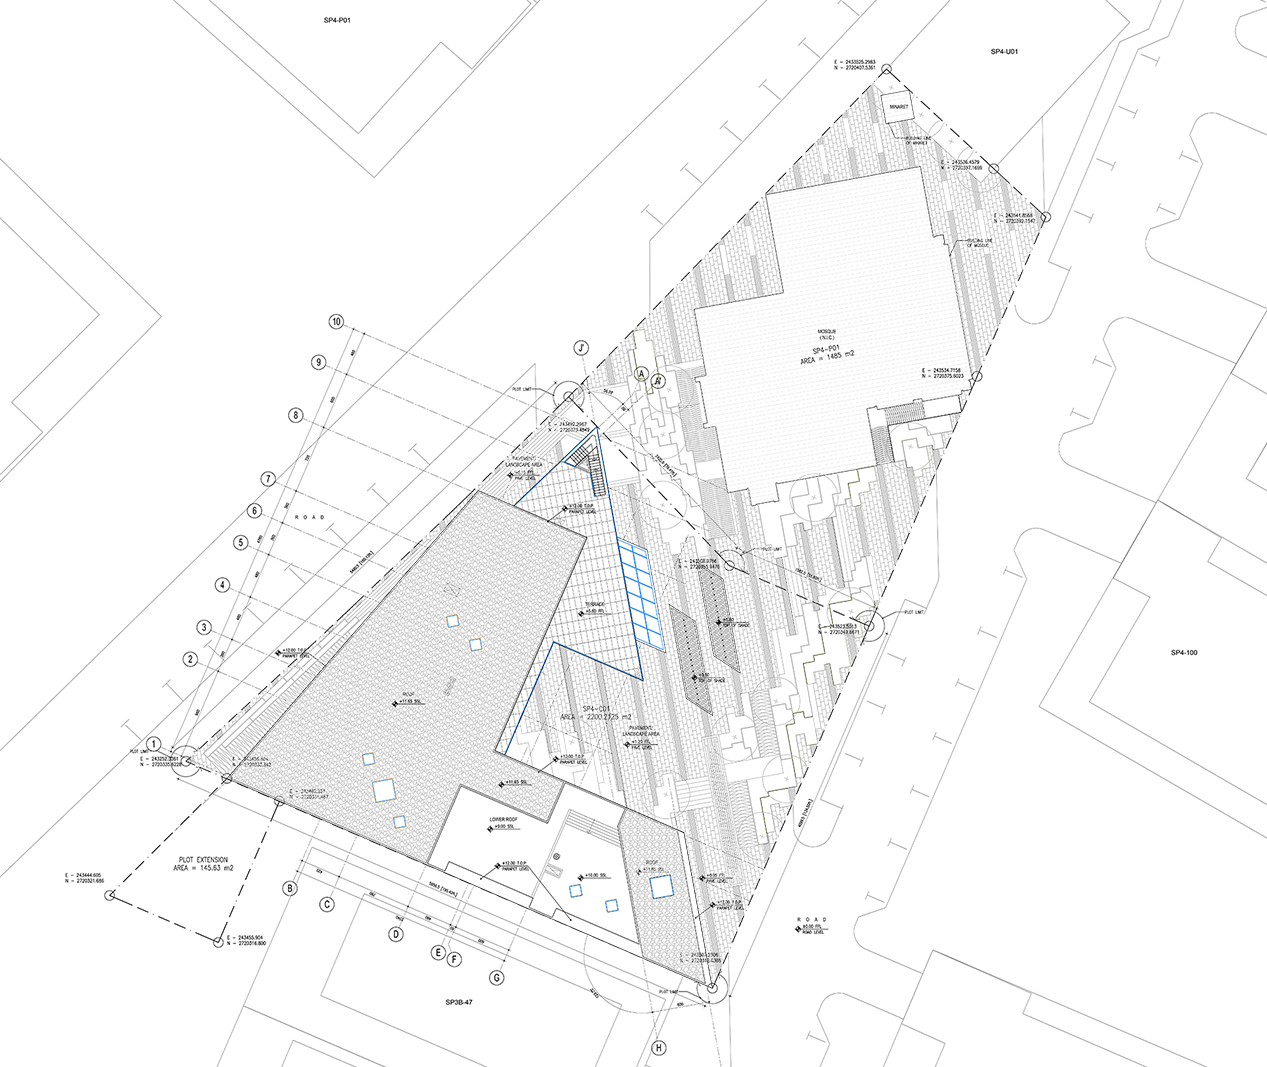 Community Centre 2 BEAD SDIC site plan.JPG